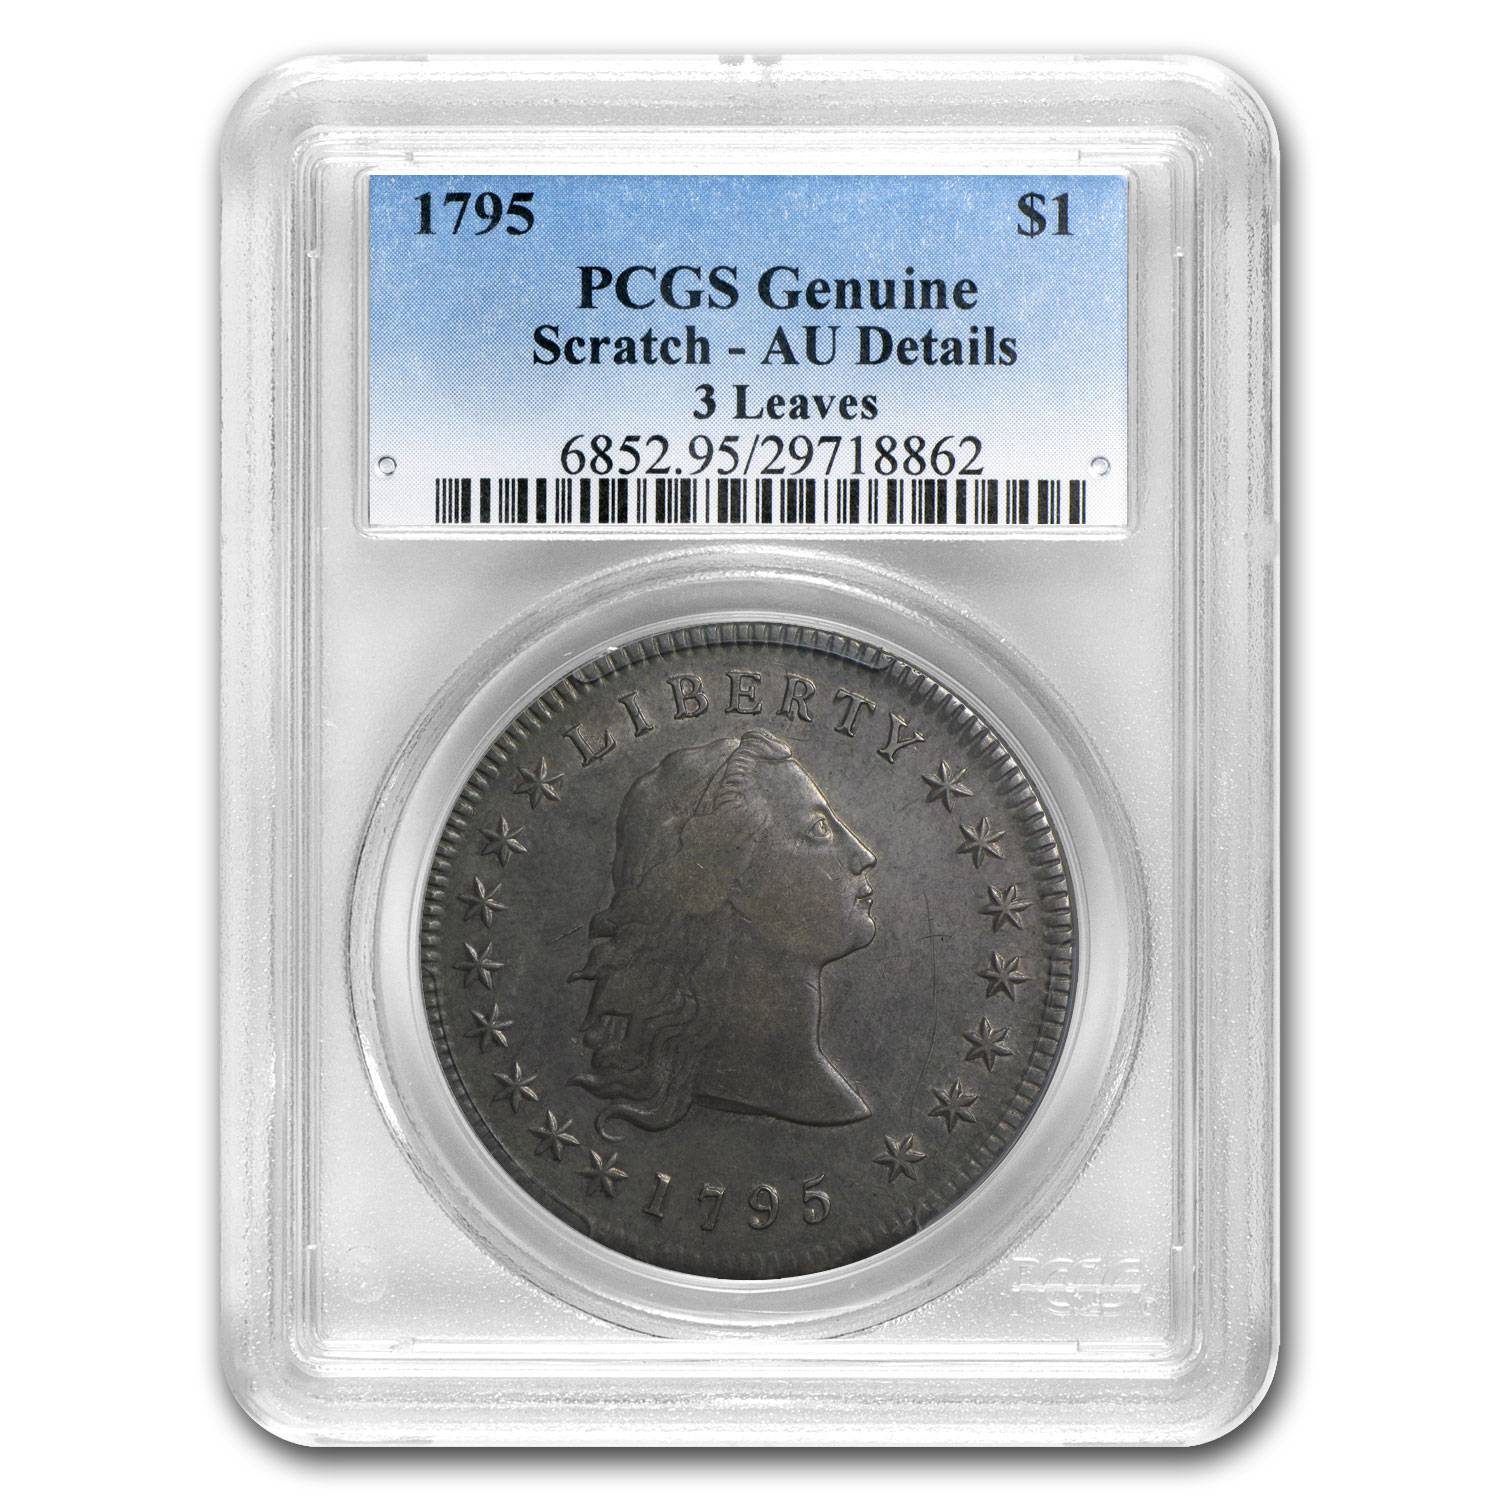 1795 Flowing Hair Dollar AU Details - Scratch - PCGS - 3 Leaves